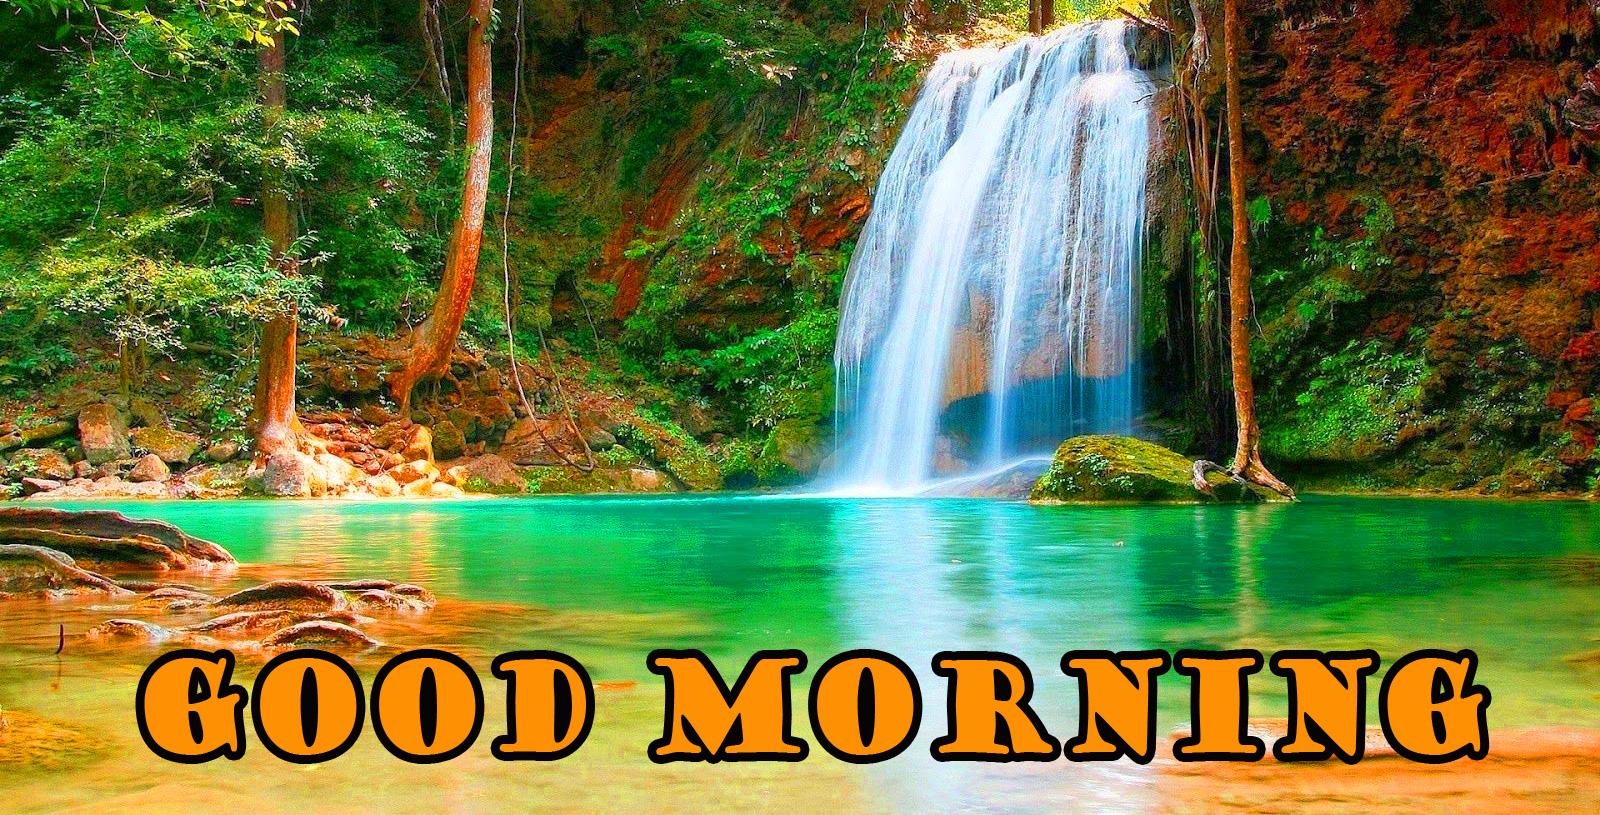 Good Morning Nature Images Photo Download In HD